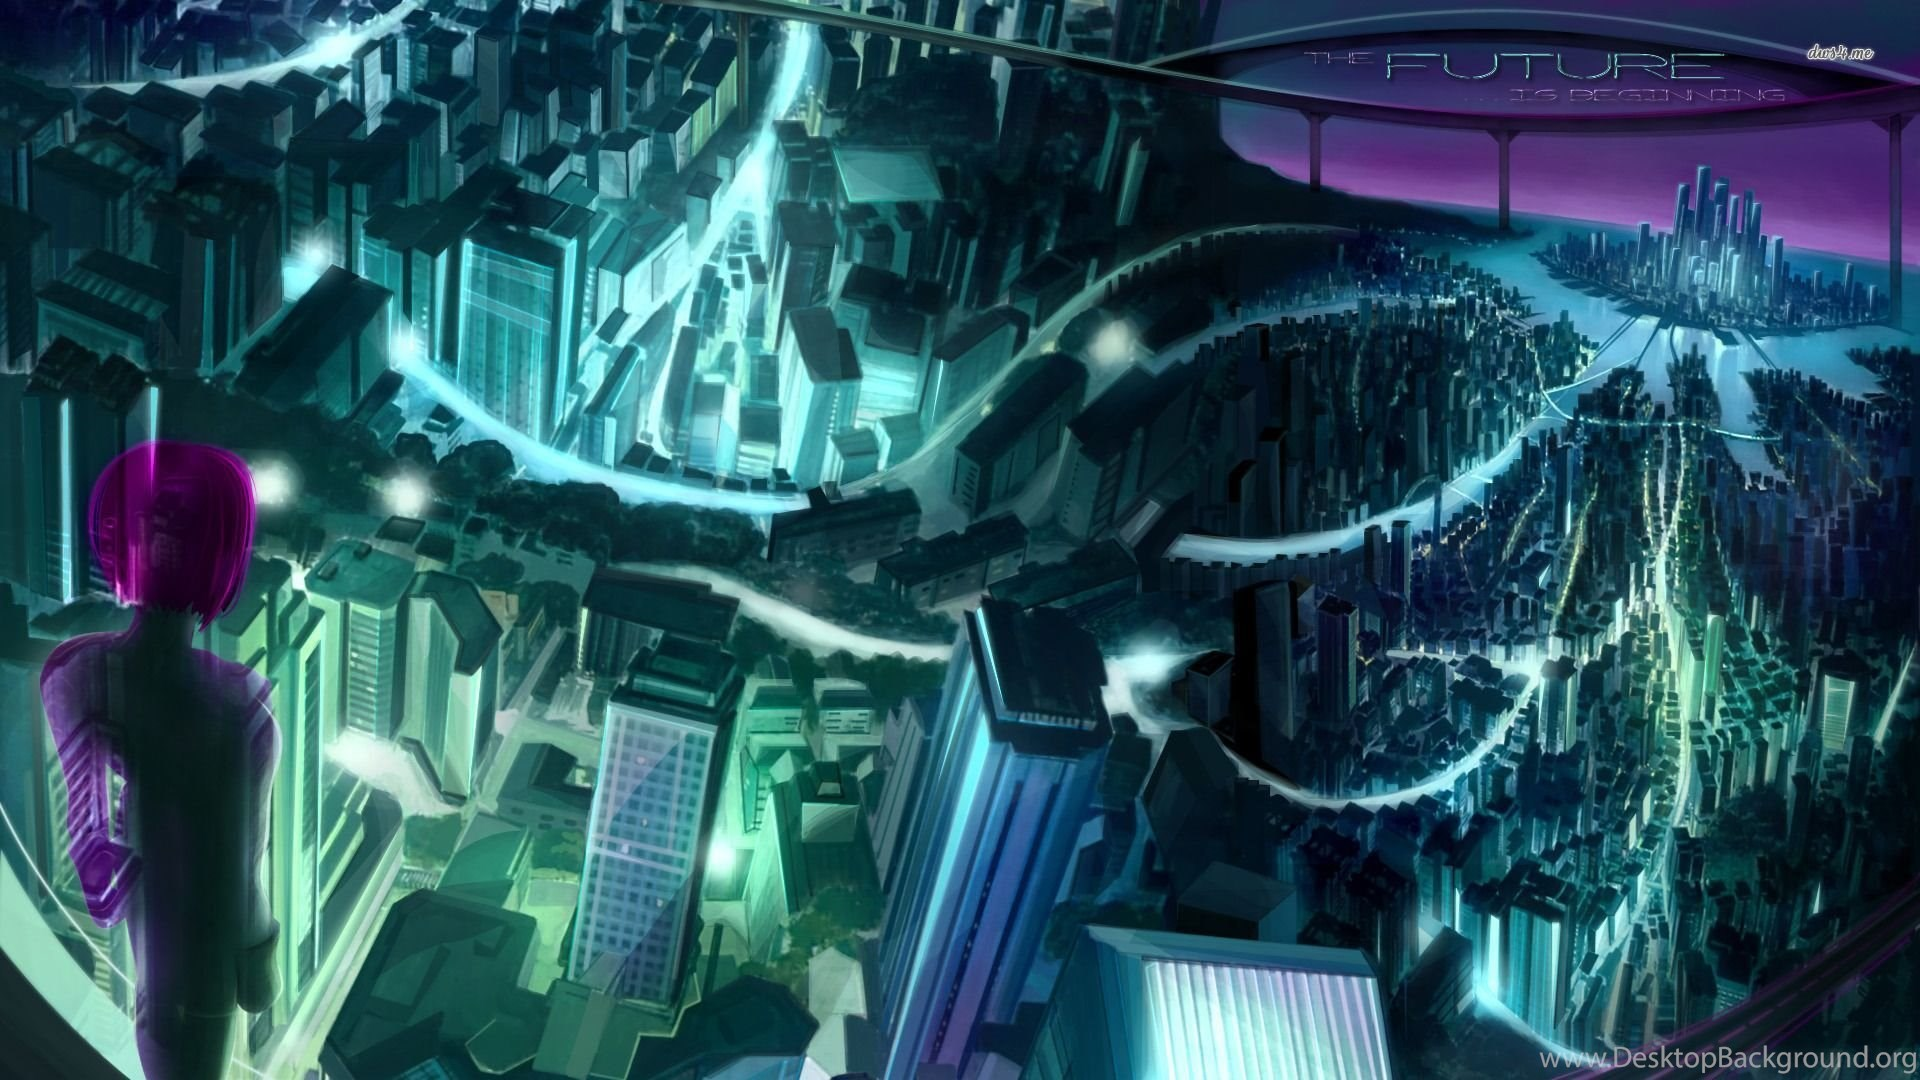 Ghost In The Shell Wallpapers Anime Wallpapers Desktop Background